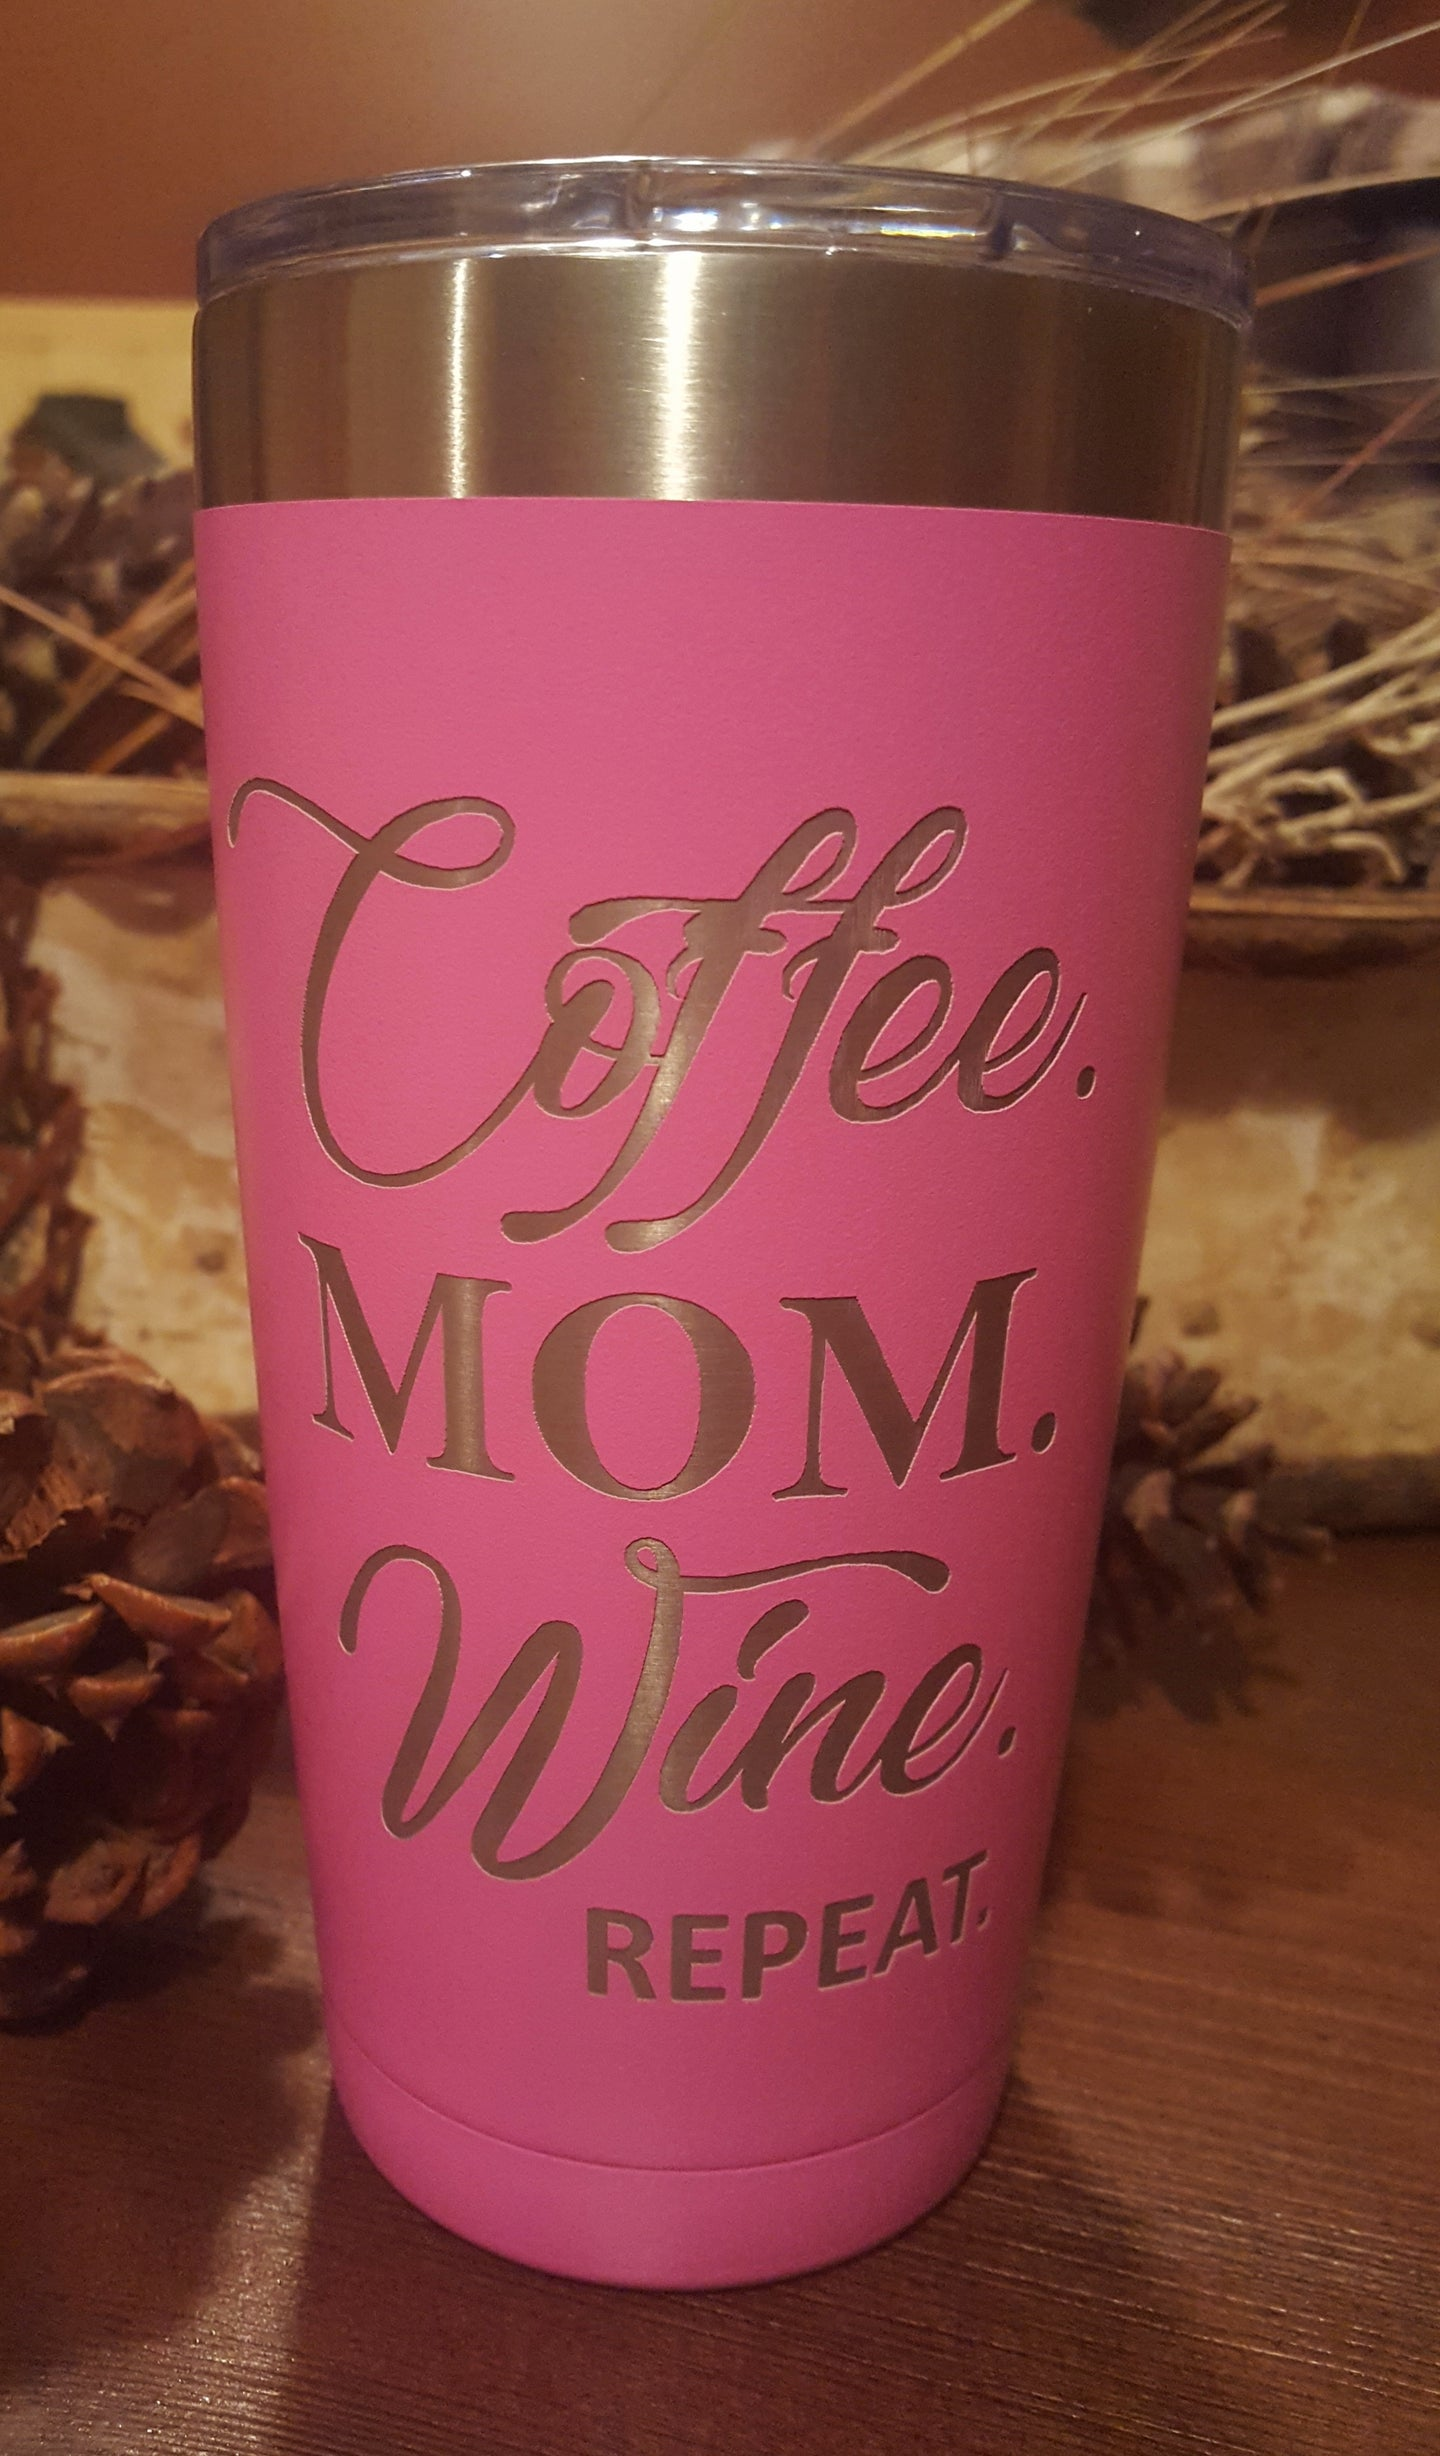 COFFEE. MOM. WINE. REPEAT.